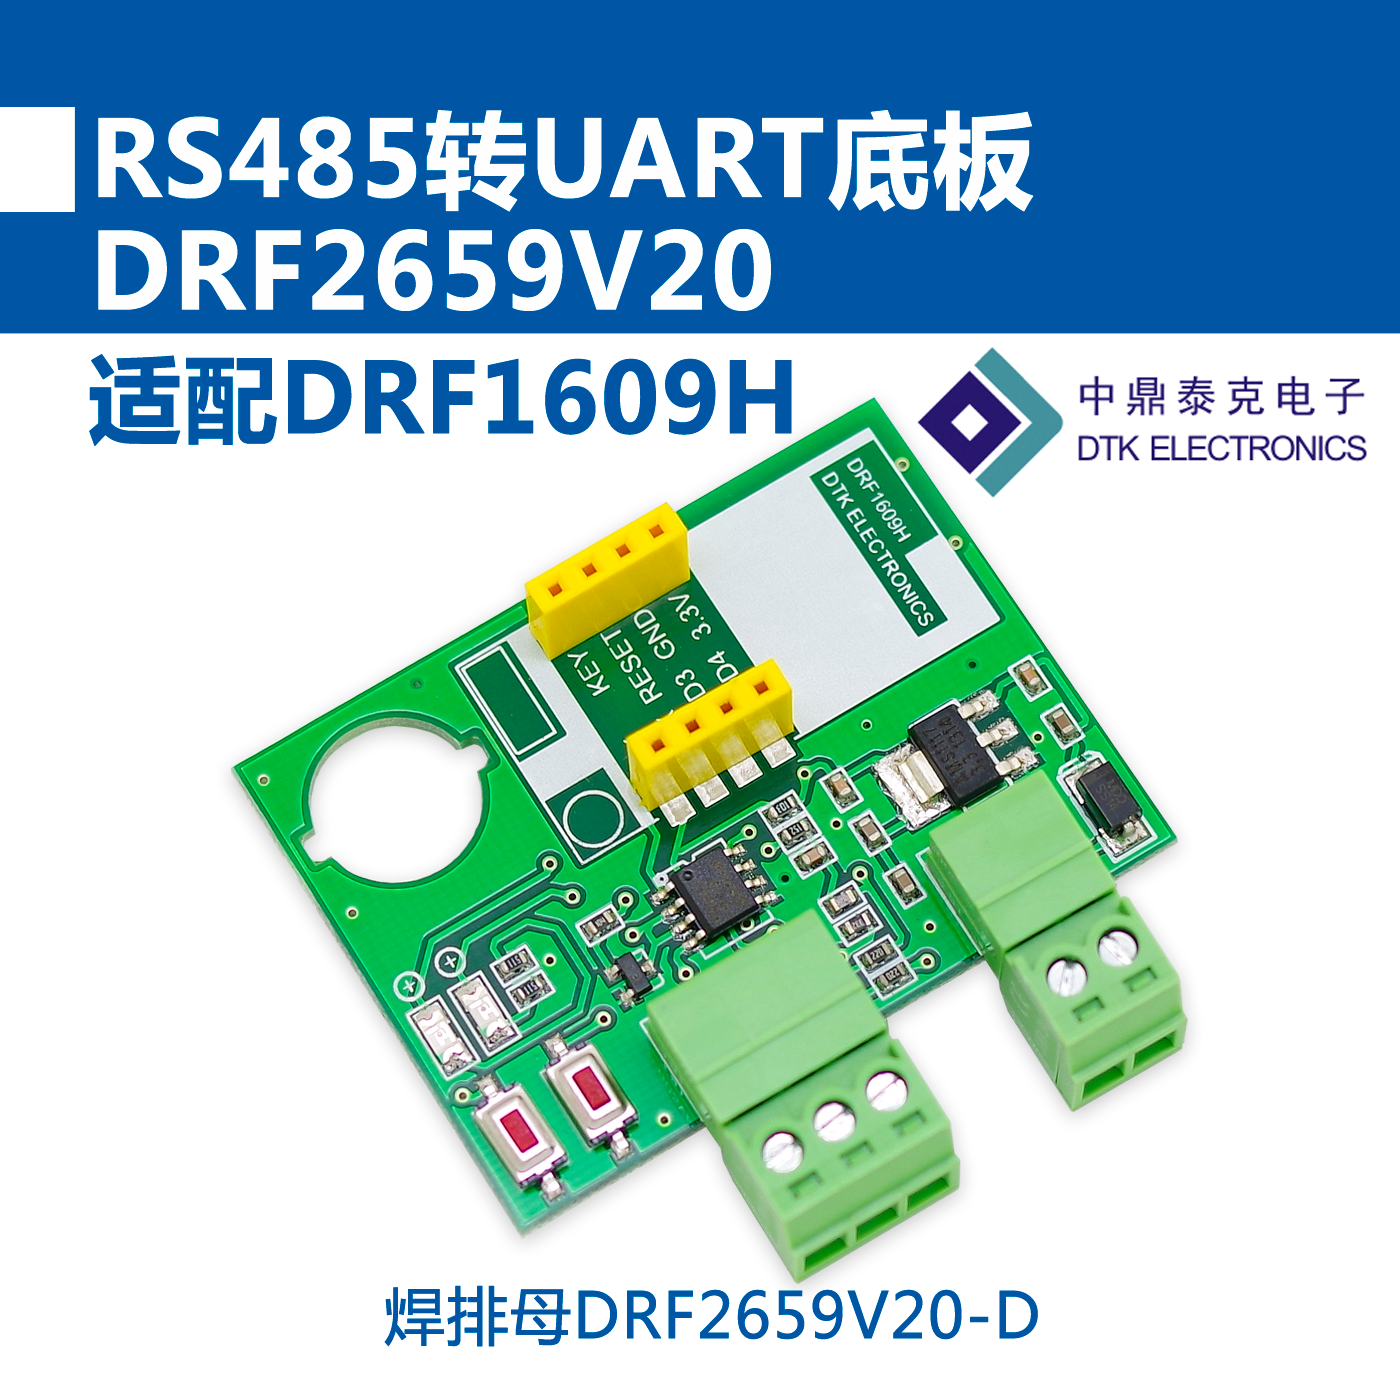 RS485 to UART Backplane, RS485 Adapter Board, Apply to DRF1609H Module novatec d881 d882 mtb bike hubs fr am mountain bike disc hubs 15 mm rear hub front 12 x142 barrel shaft hub 32 holes page 9